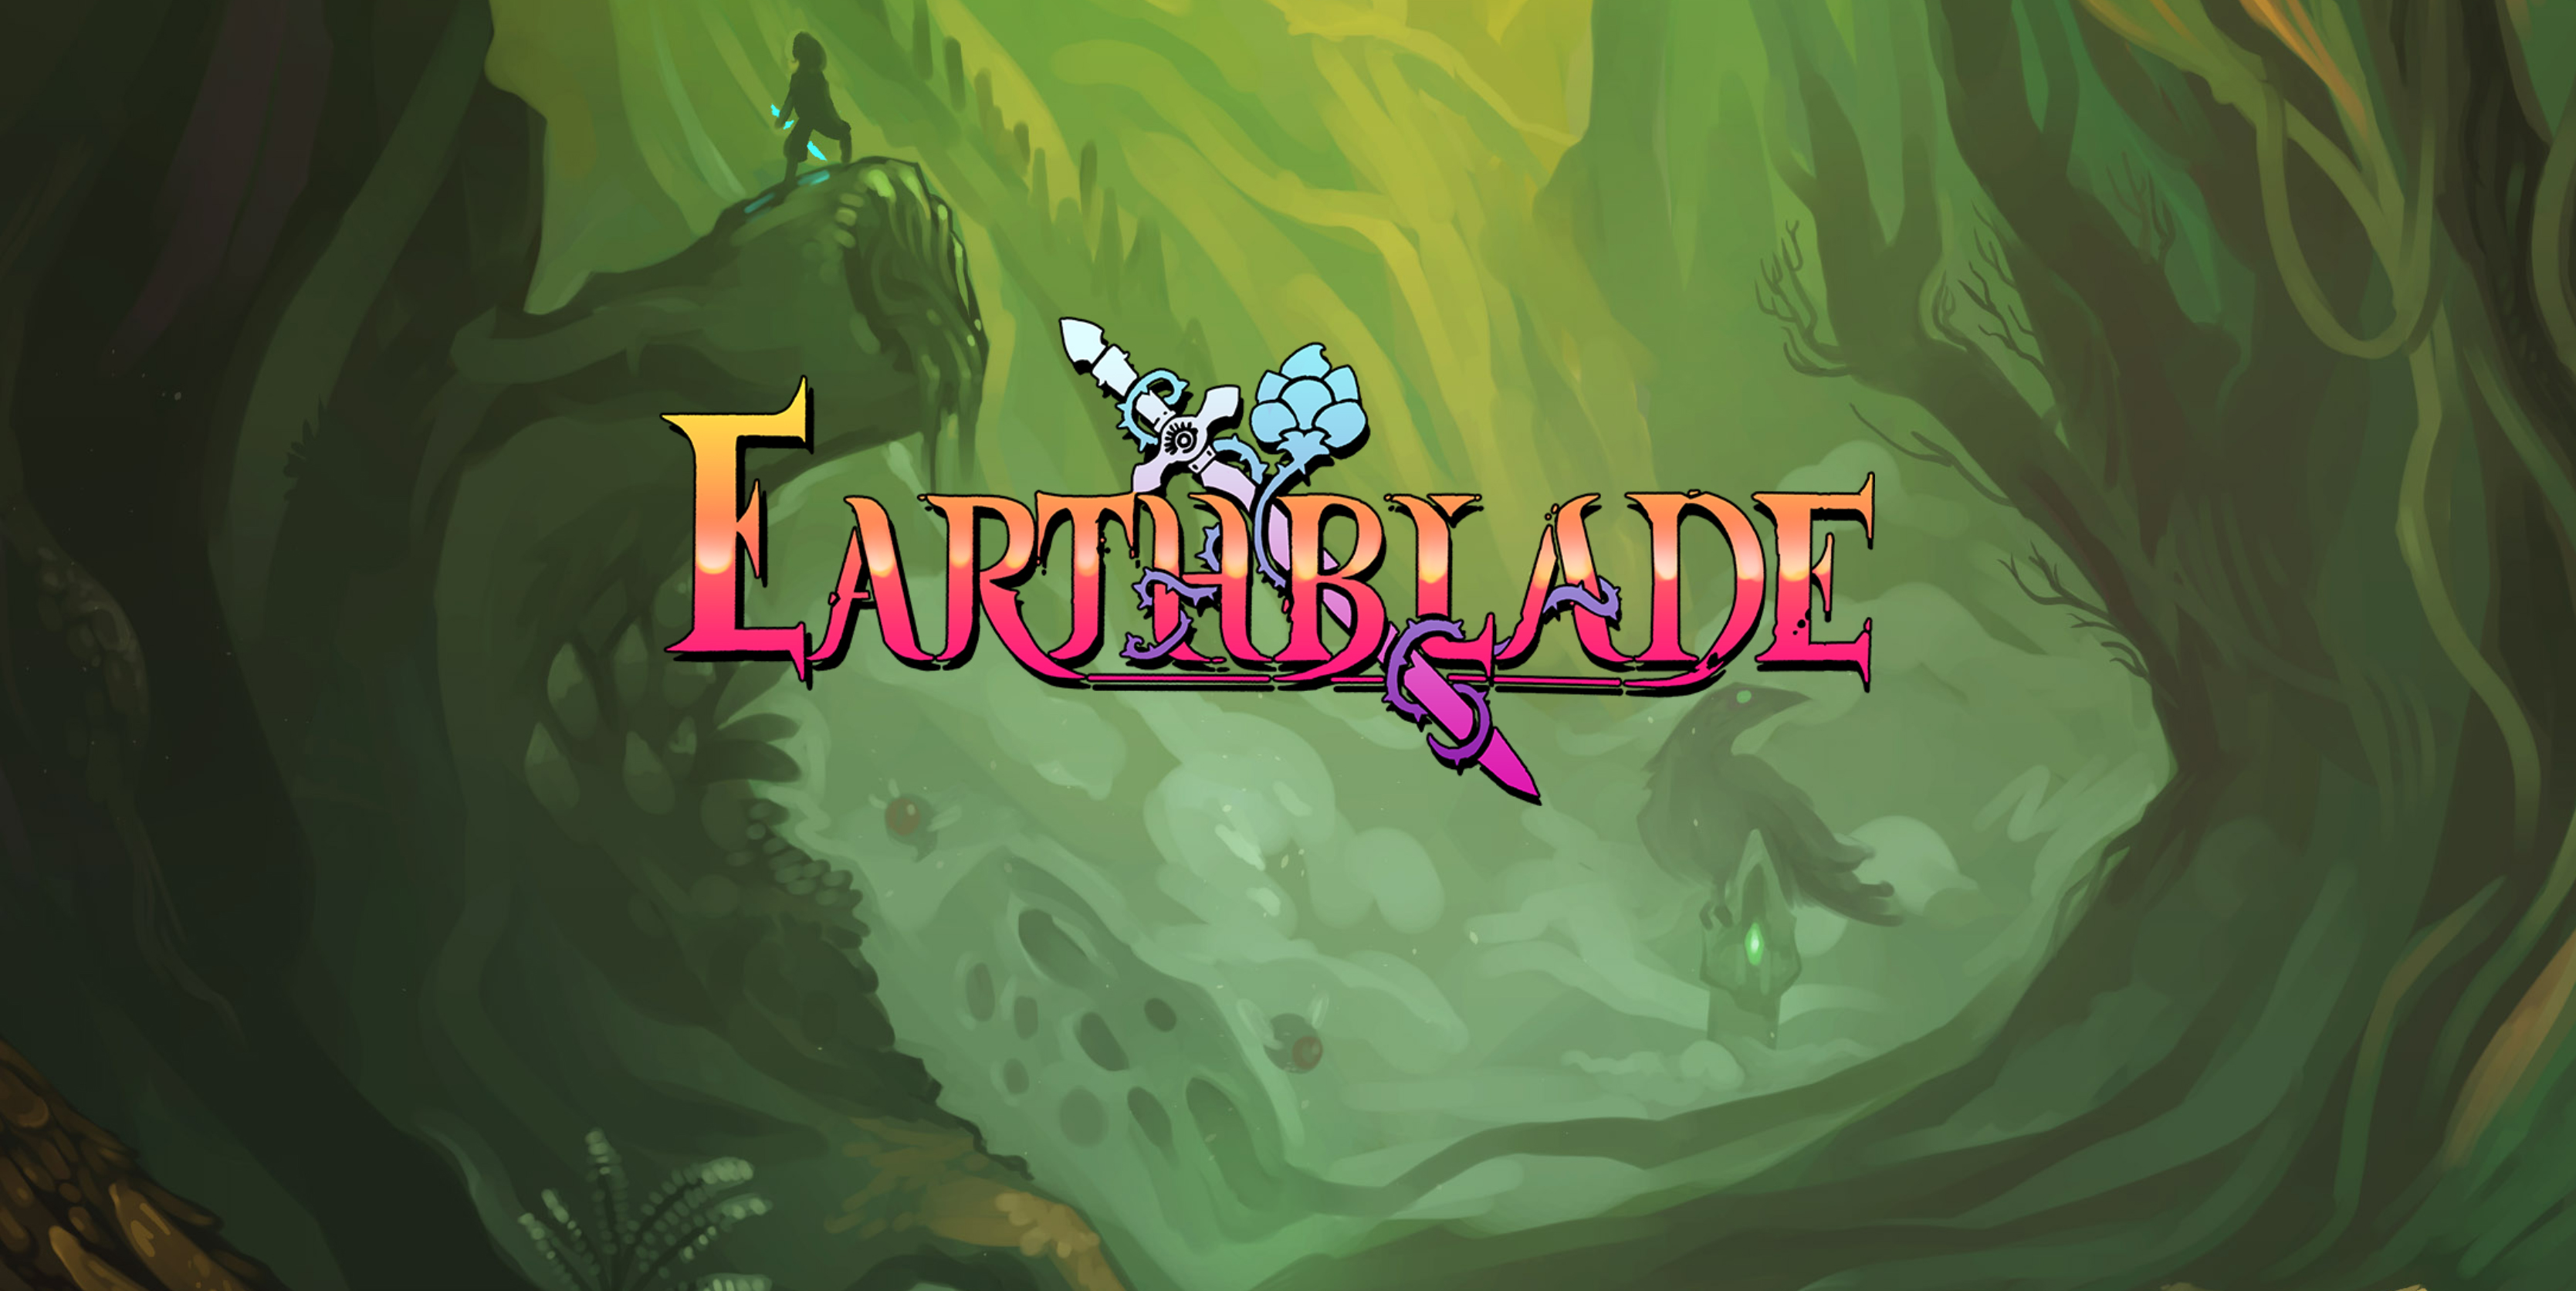 Earthblade is an extremely good sequel to Celeste